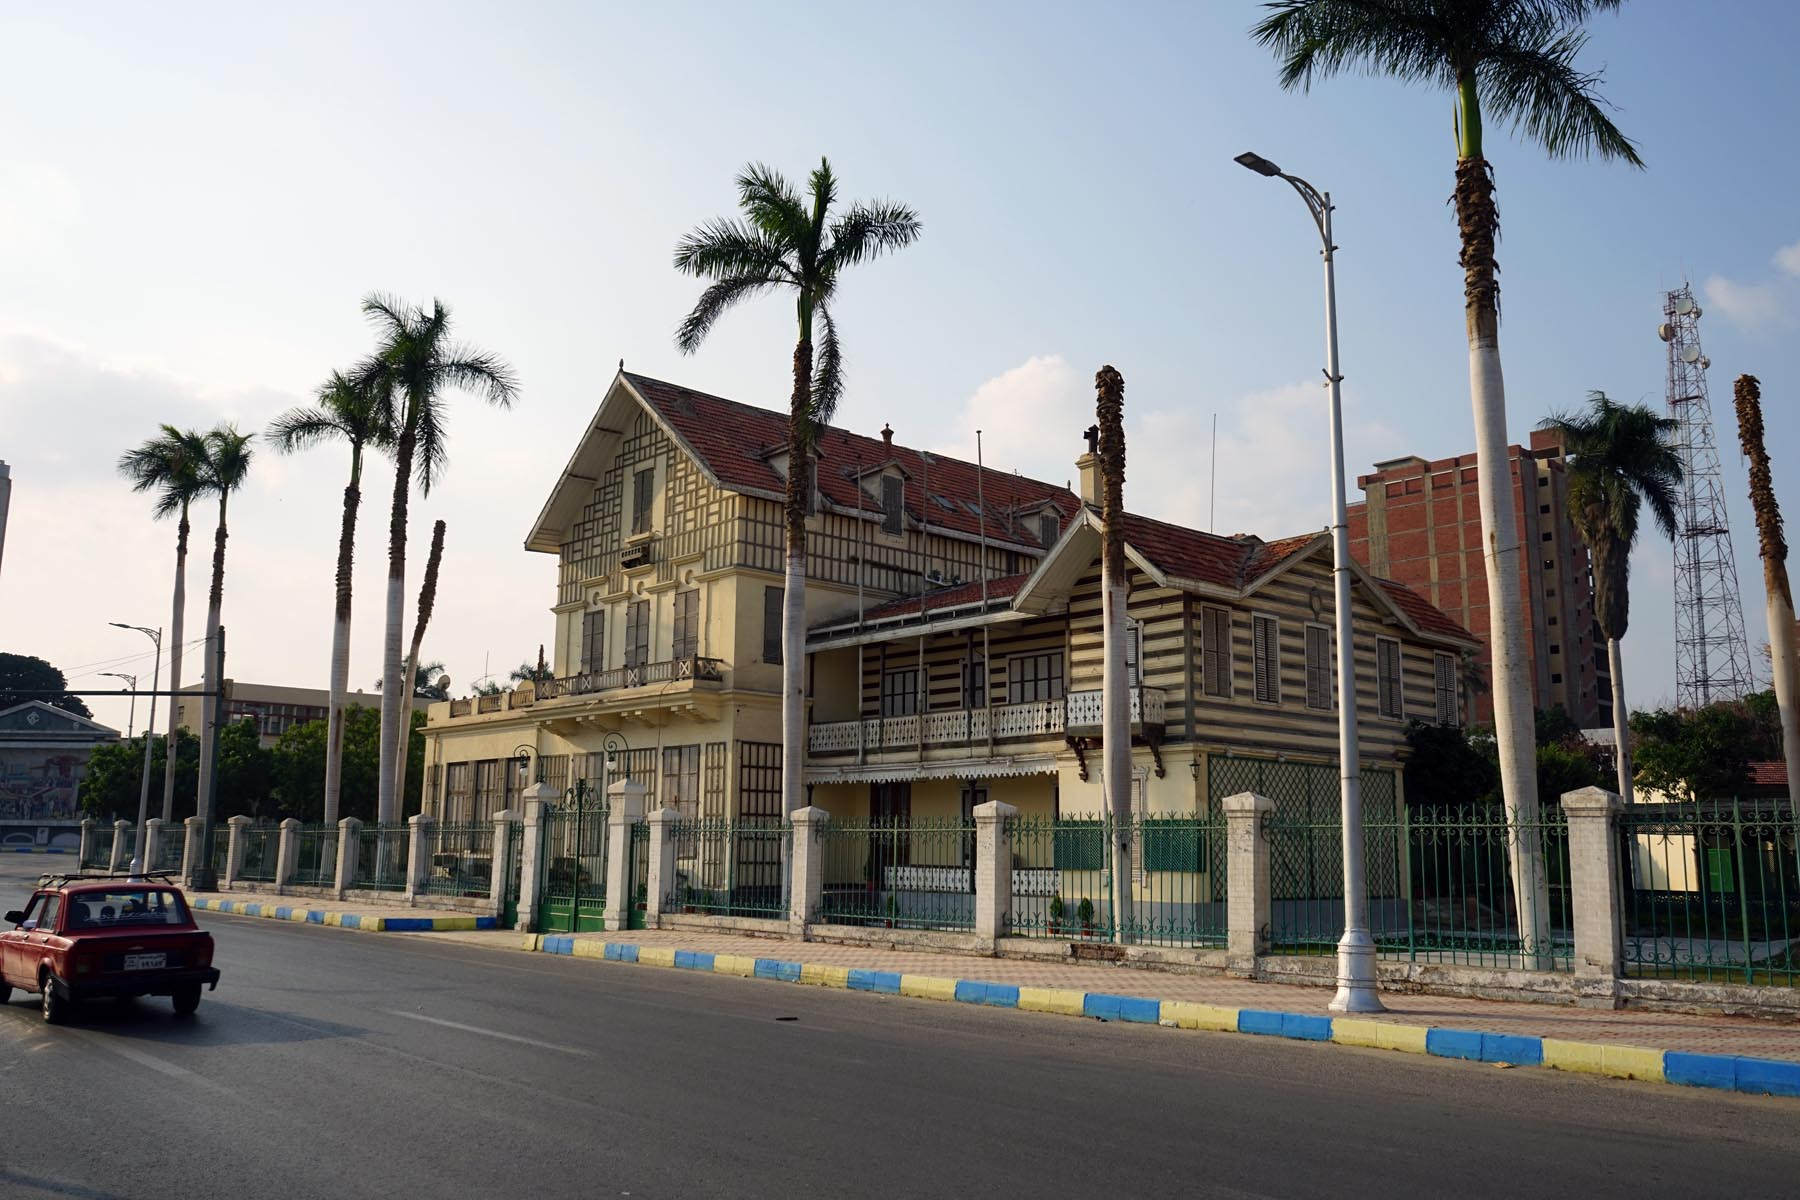 The house of the French developer of the Suez Canal Ferdinand de Lesseps in Ismailia. (Marc Espanol)